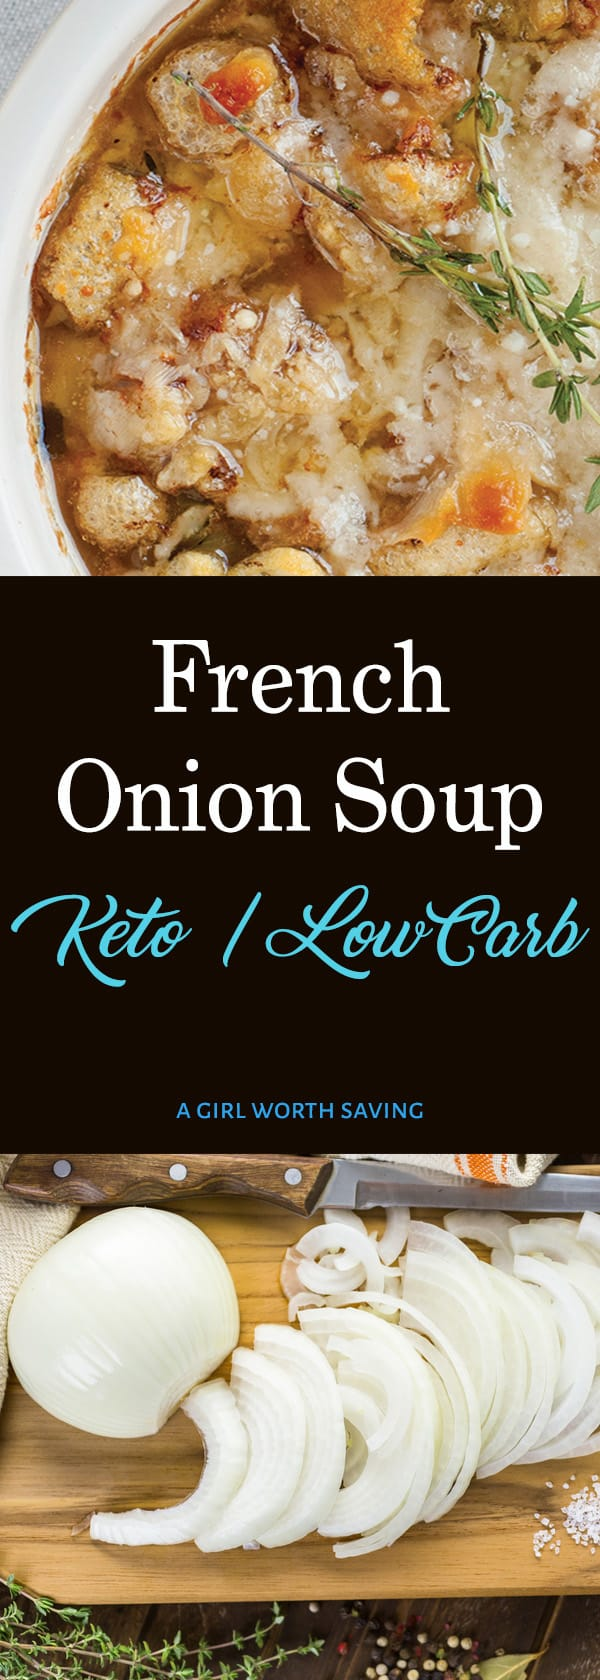 Stay warm with this Keto French onion soup! With beef stock base, slow-cooked caramelized onions, pork rings, Gruyere and Parmesan cheese. Is there anything more comforting on a chilly day than a hot bowl of French onion soup?